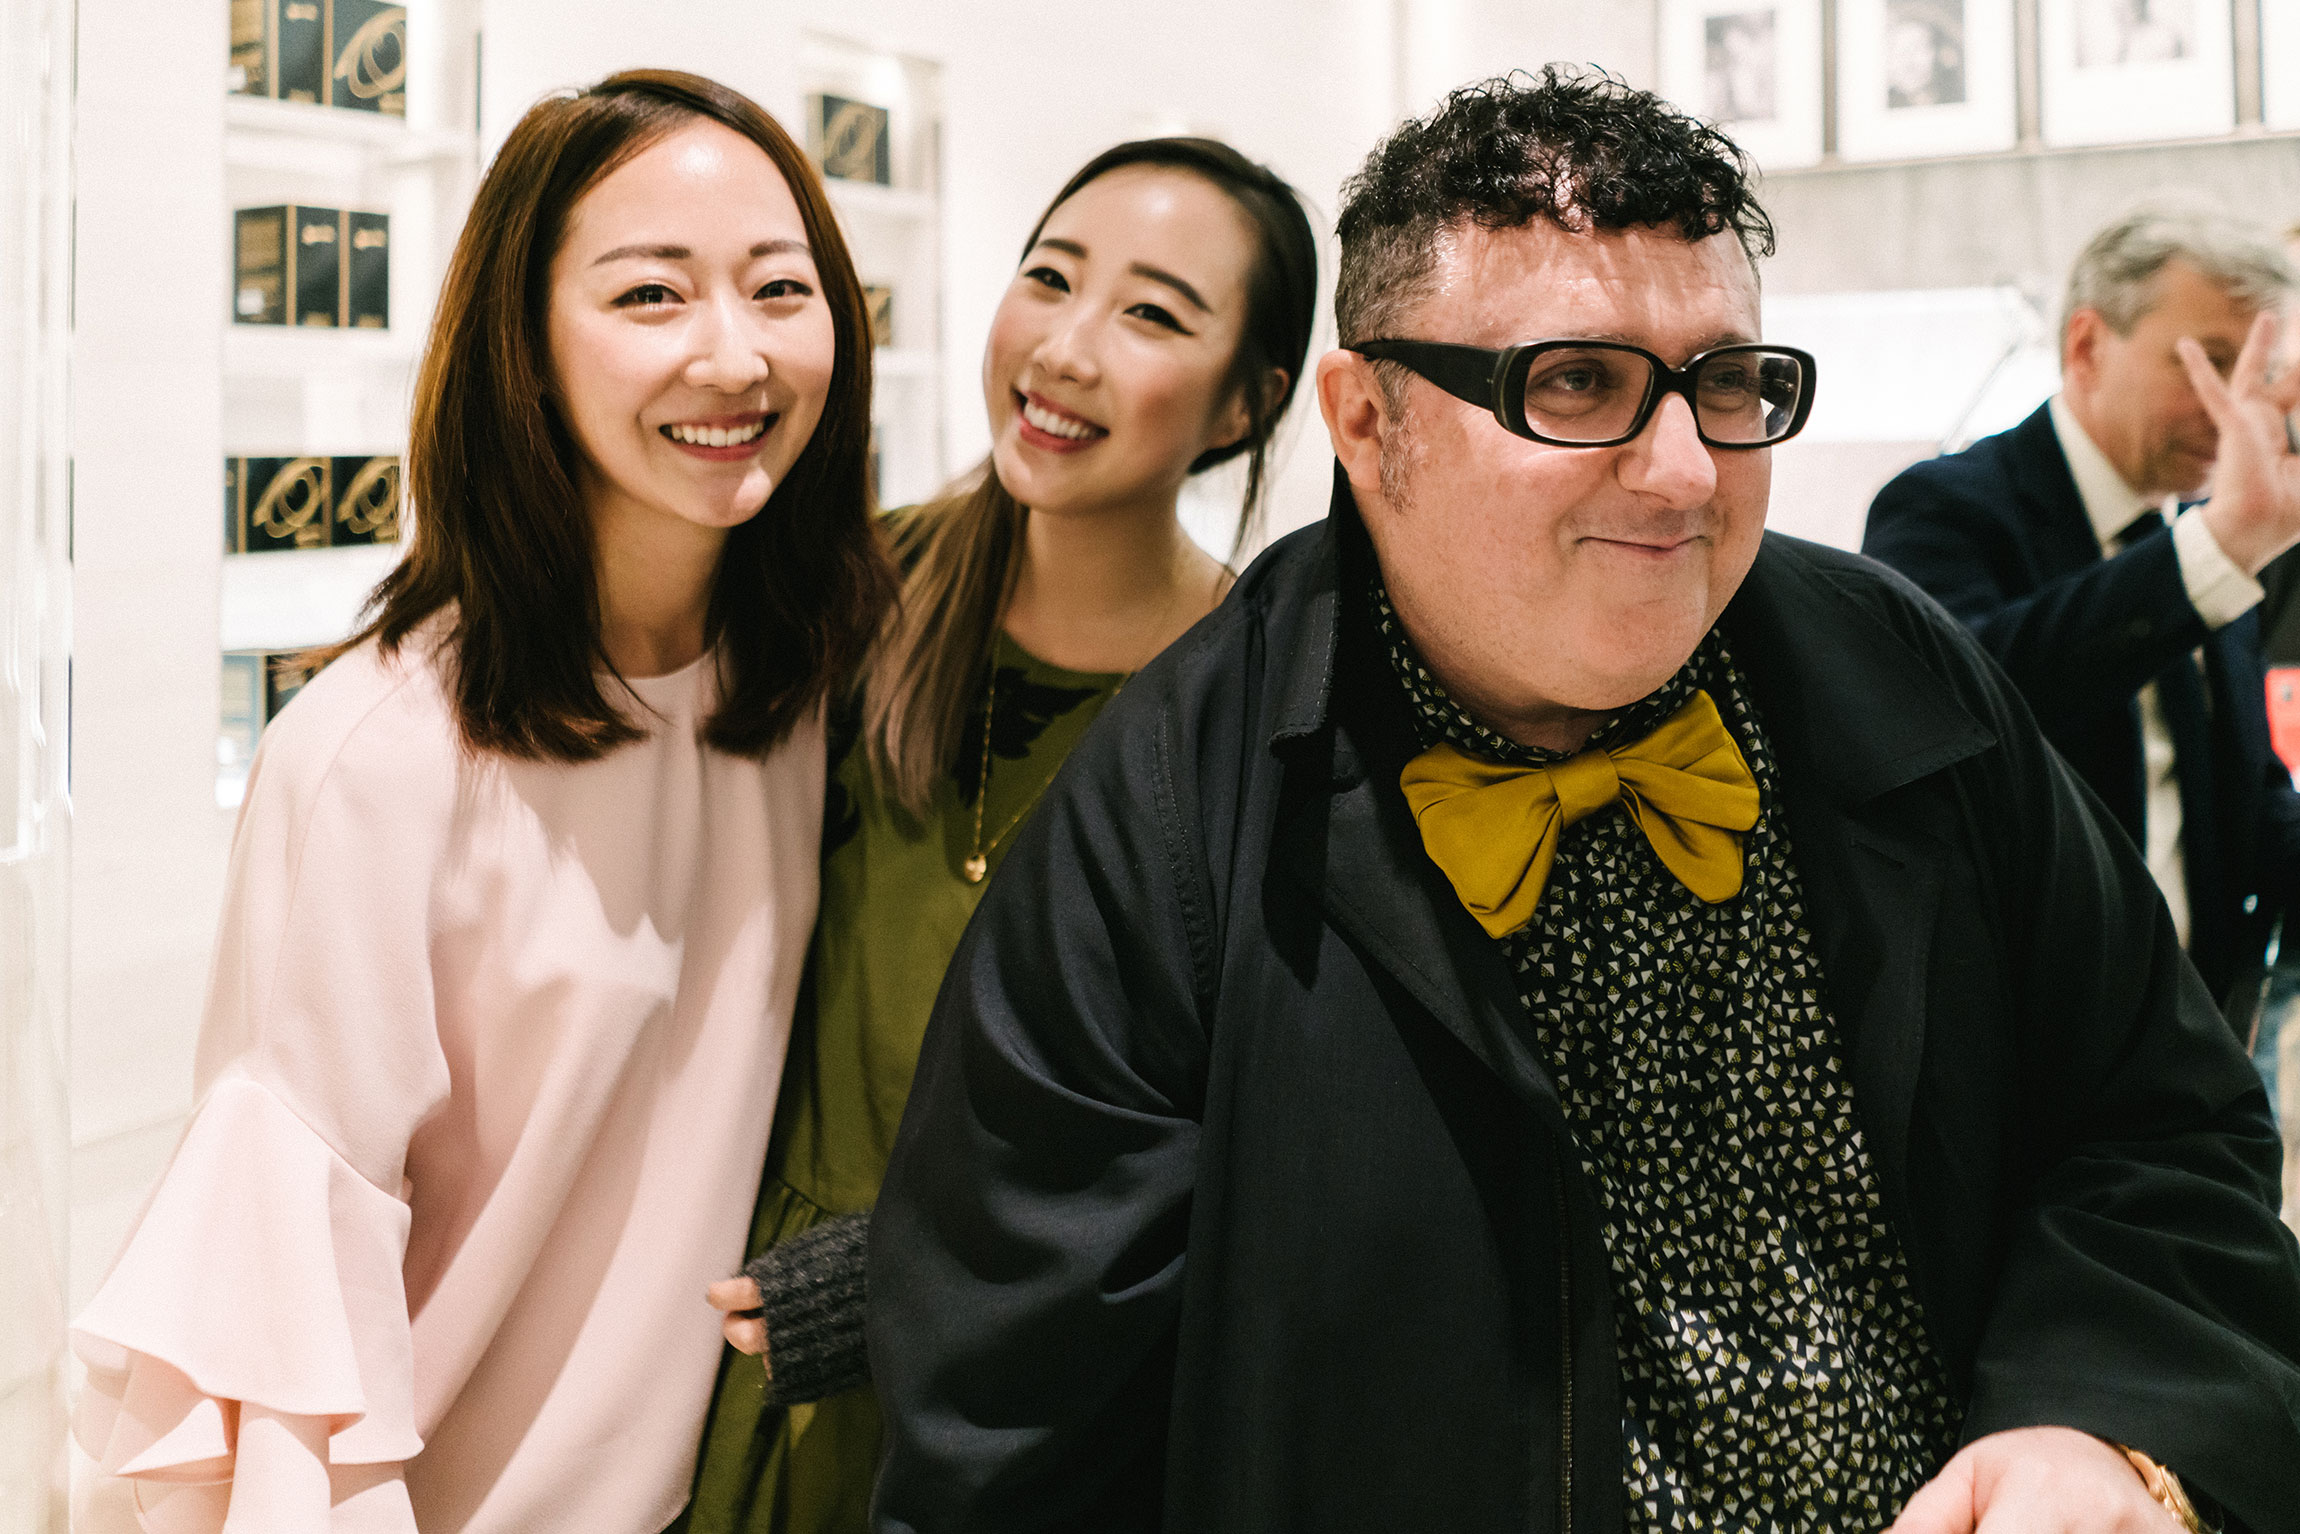 Yujin  and I with Alber Elbaz (who is 'Superstitious' and doesn't look at the camera, haha.)